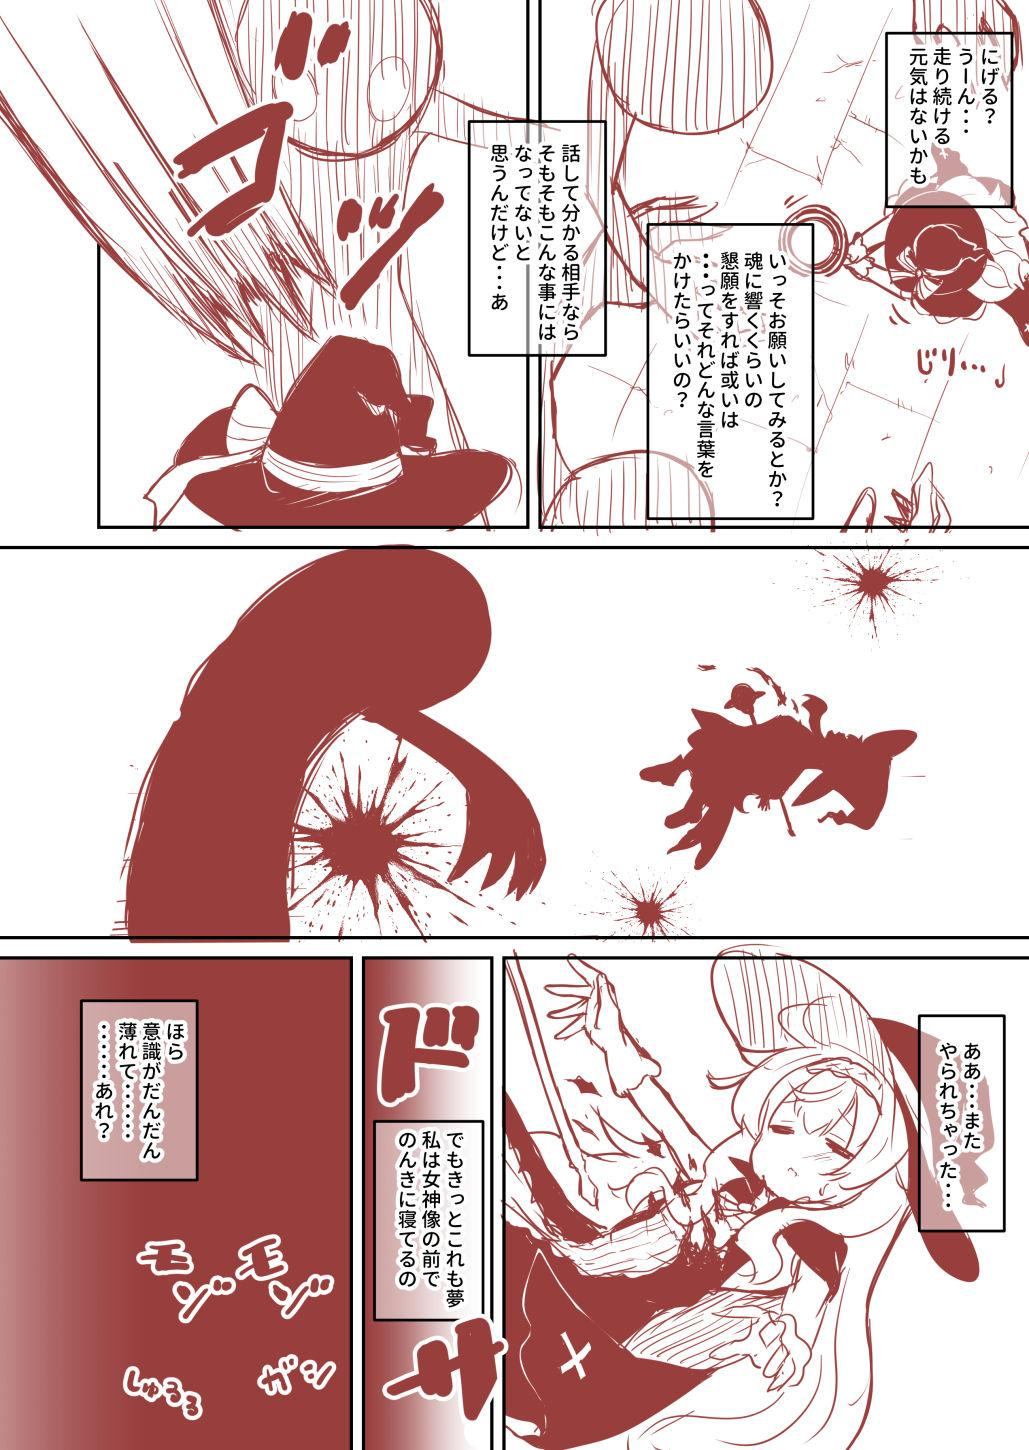 A story about Nobeta not returning to the Goddess Statue even though she failed 3